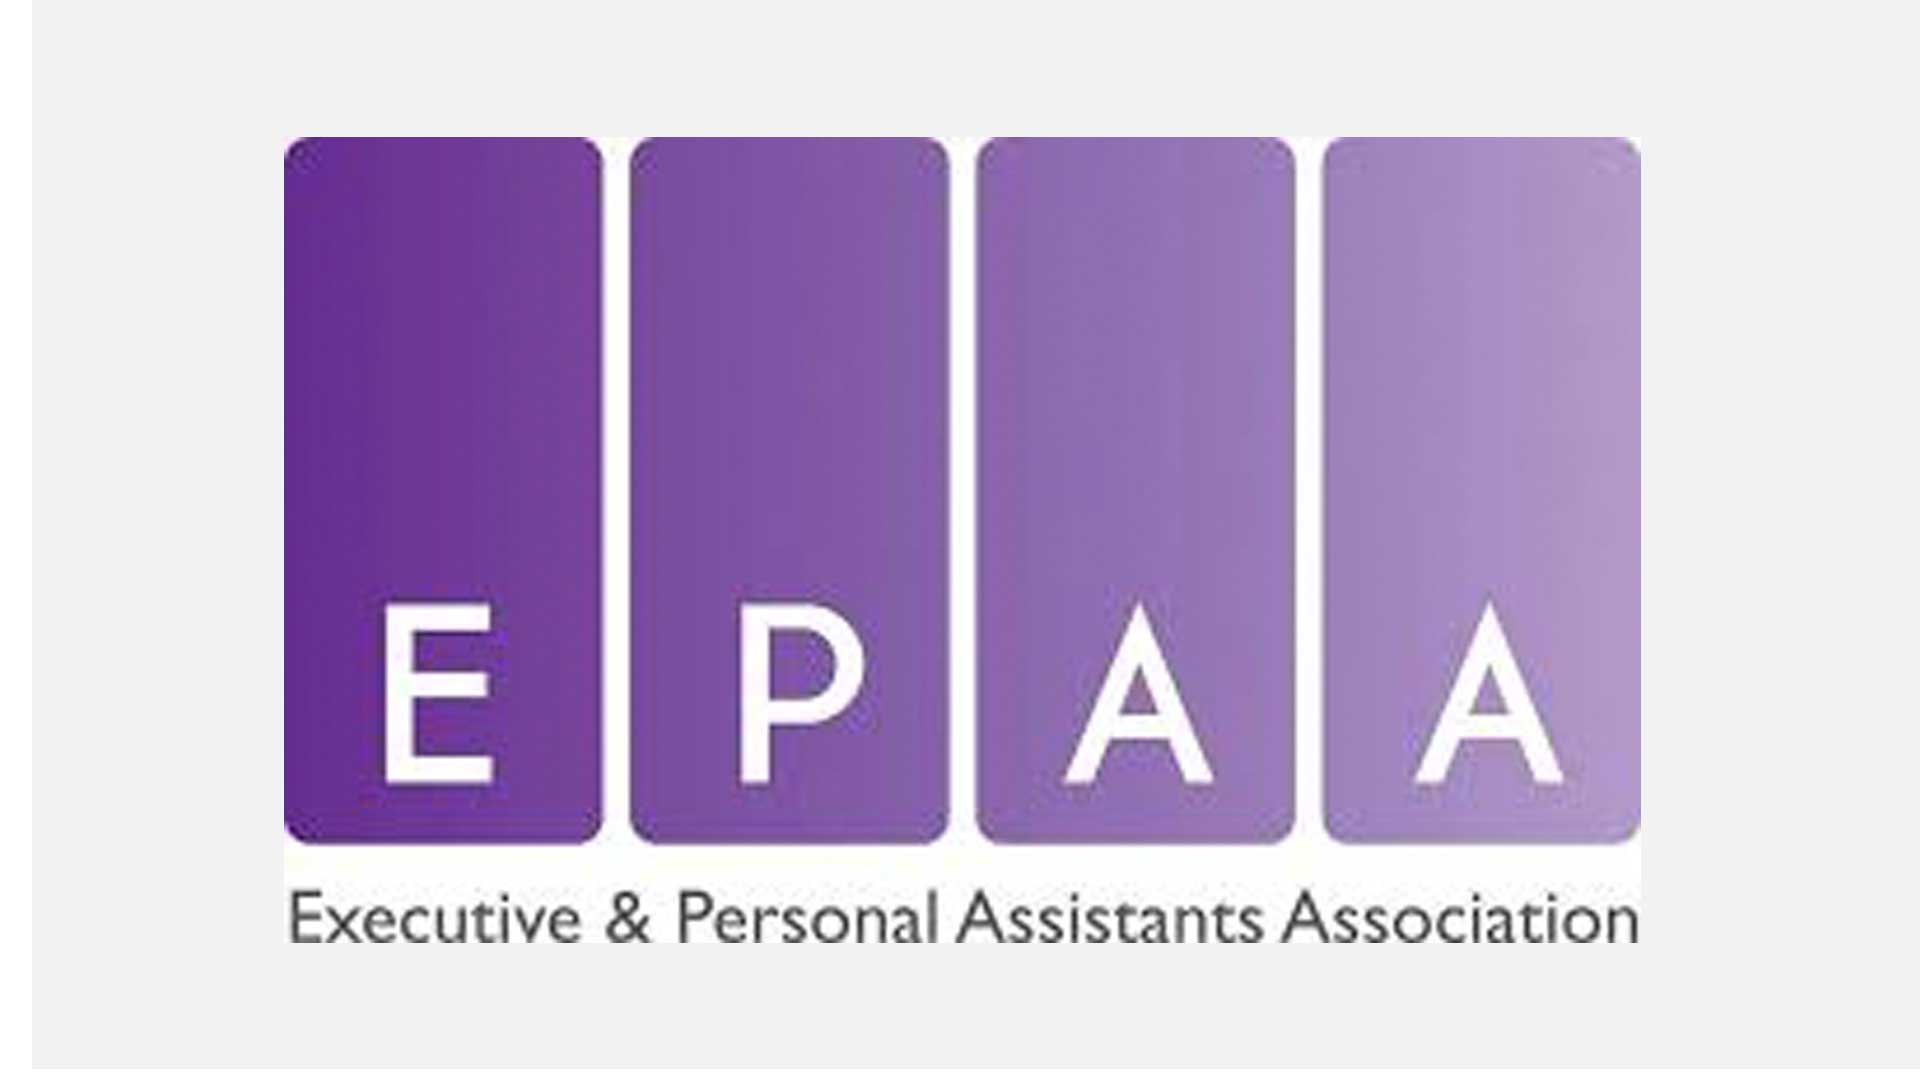 FLIP-it at Executive & Personal Assistants Association